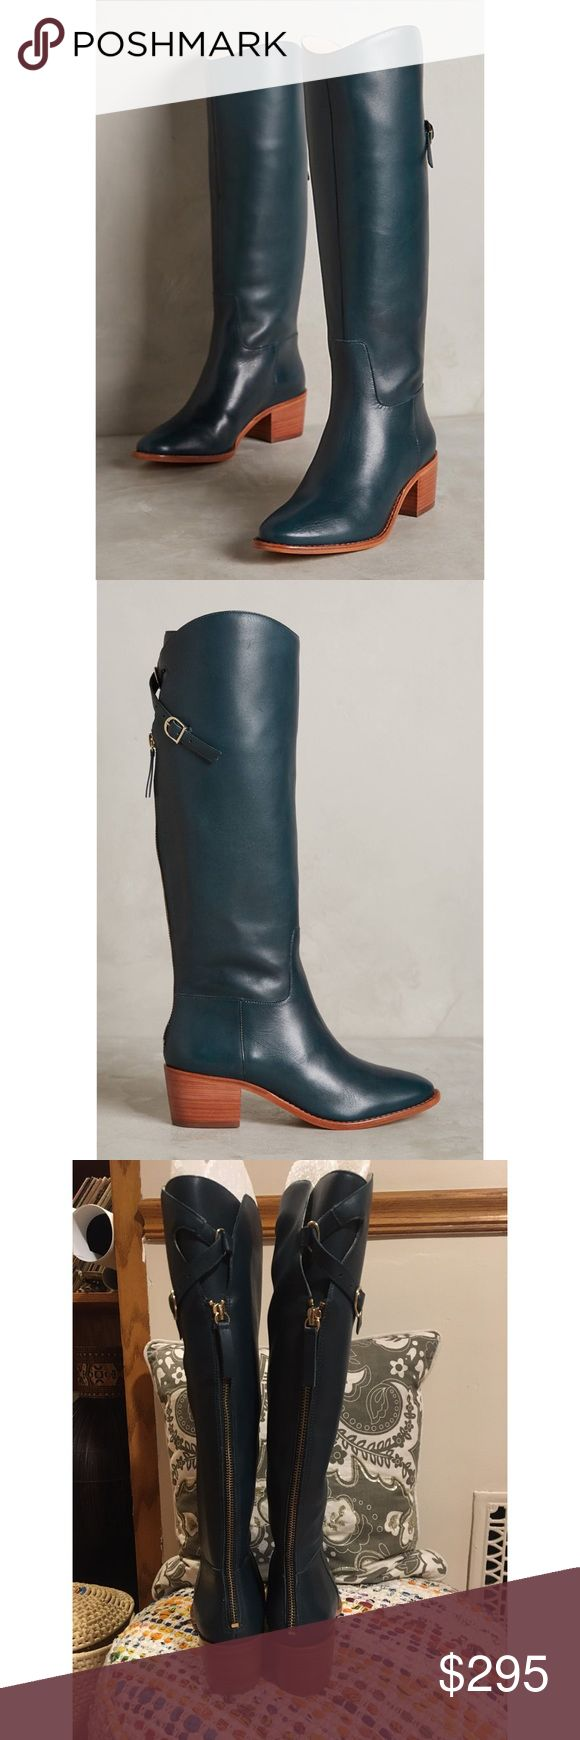 "🔥SALE🔥Anthropologie Candela Knee High Boots 🔥SALE🔥 NWOB. Structured leather and a just-high-enough stacked heel make these boots a wear-for-years essential. From Candela. Forest Green.   Fits true to size Back zip Leather upper, insole, sole Imported Dimensions  2"" stacked leather heel 15.5""H, 14"" circumference Anthropologie Shoes Heeled Boots"